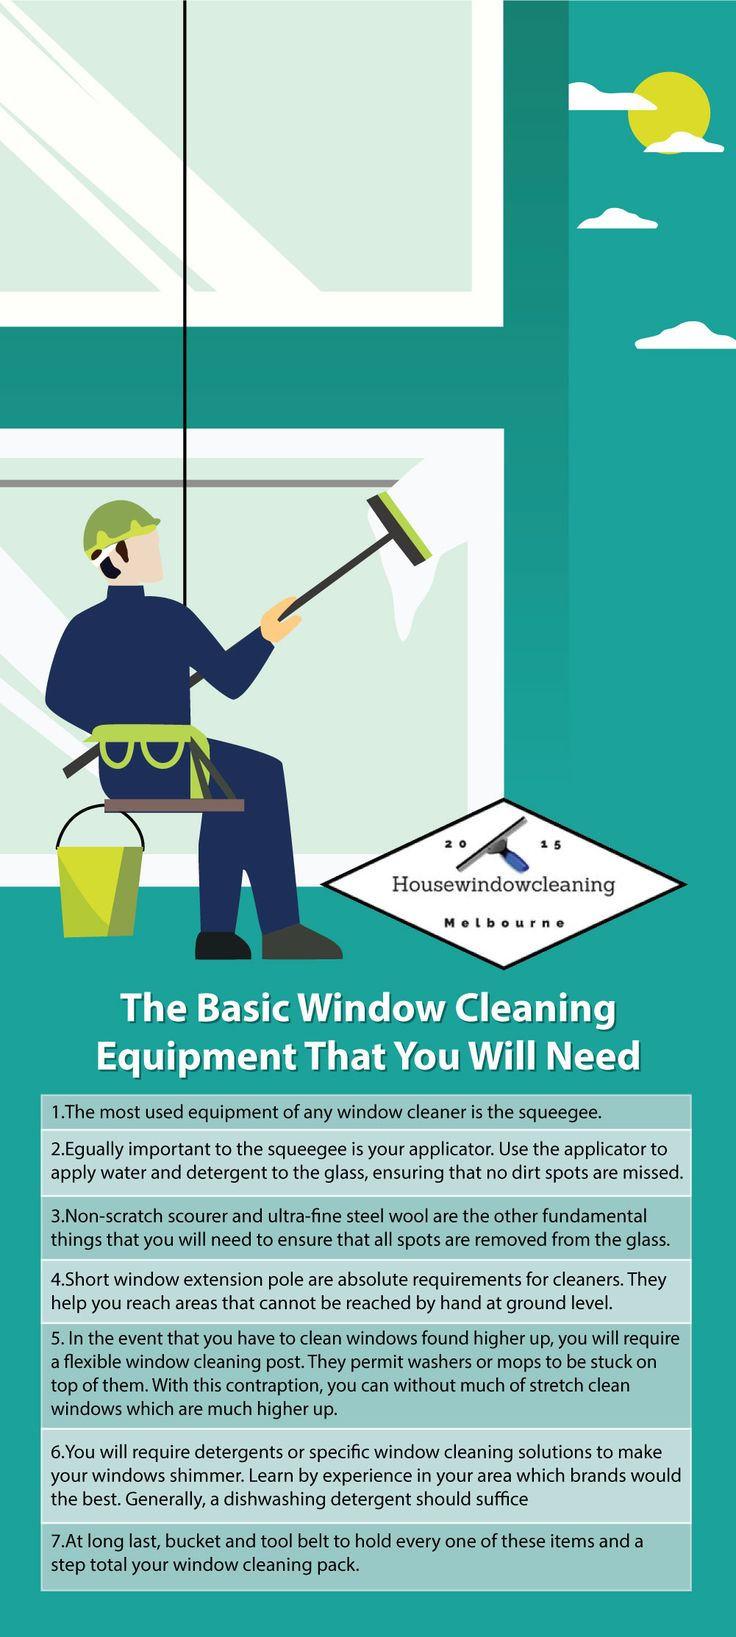 Best thing to clean windows with - The Basic Window Cleaning Equipment That You Will Need Melbourne Window Cleaning